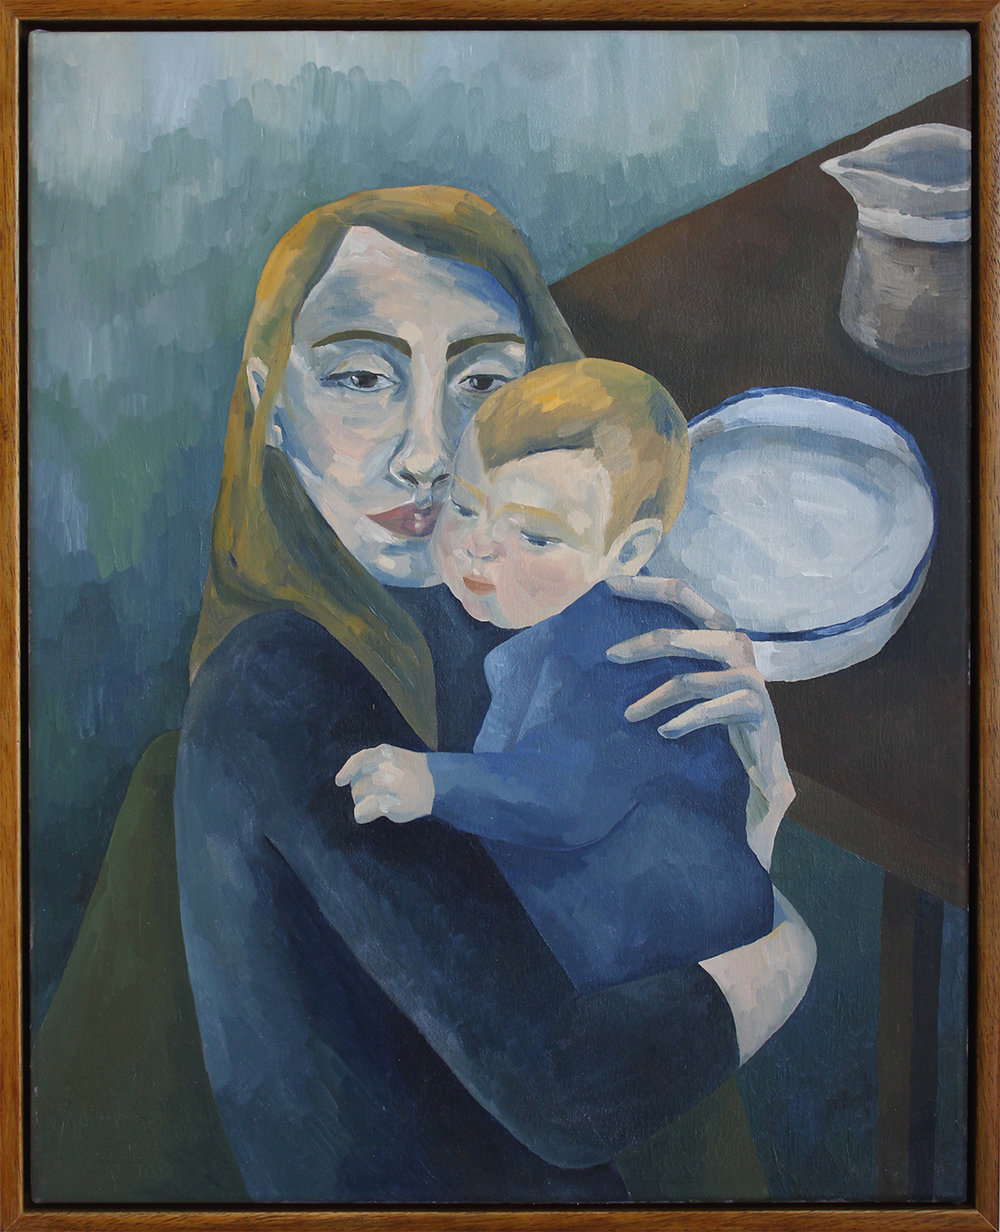 Jessica and Her Baby , commissioned portrait, 2018 oil on canvas 40cm x 50cm